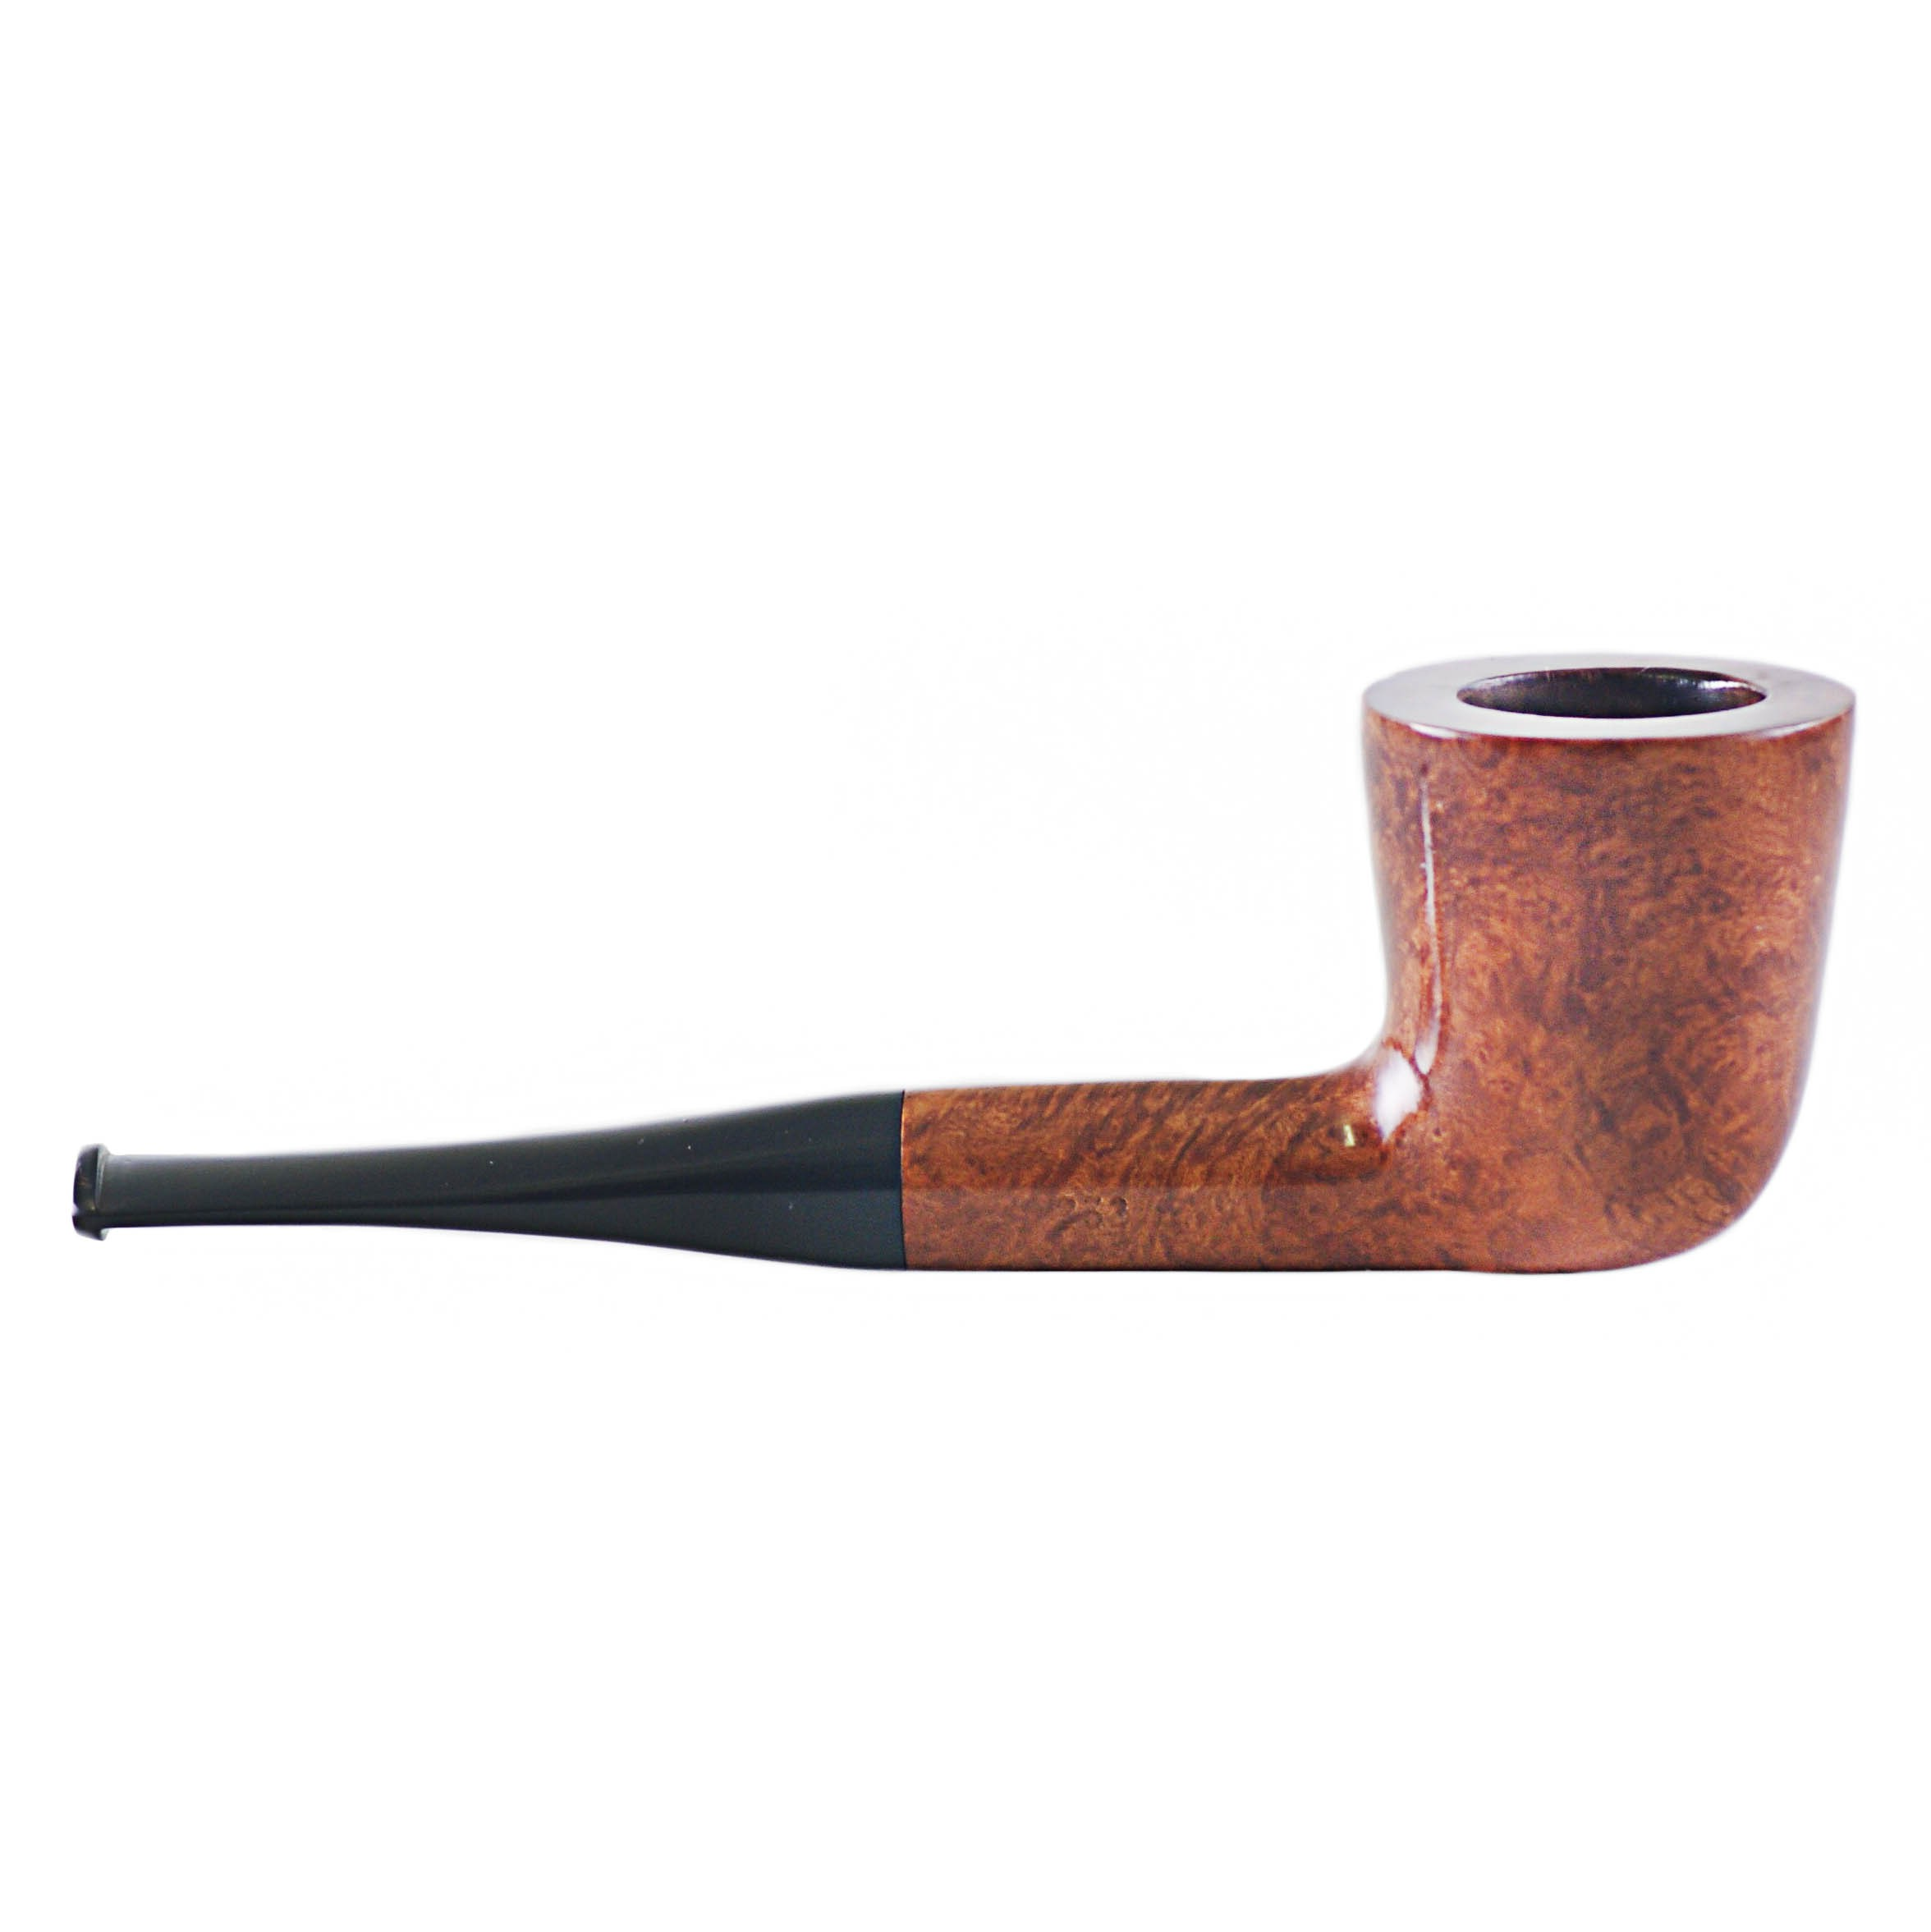 dating charatan pipes The grading of charatan pipes was lines on the pipe a good reference of charatan dating can pipe brands it is said that vuillard pipes were even.